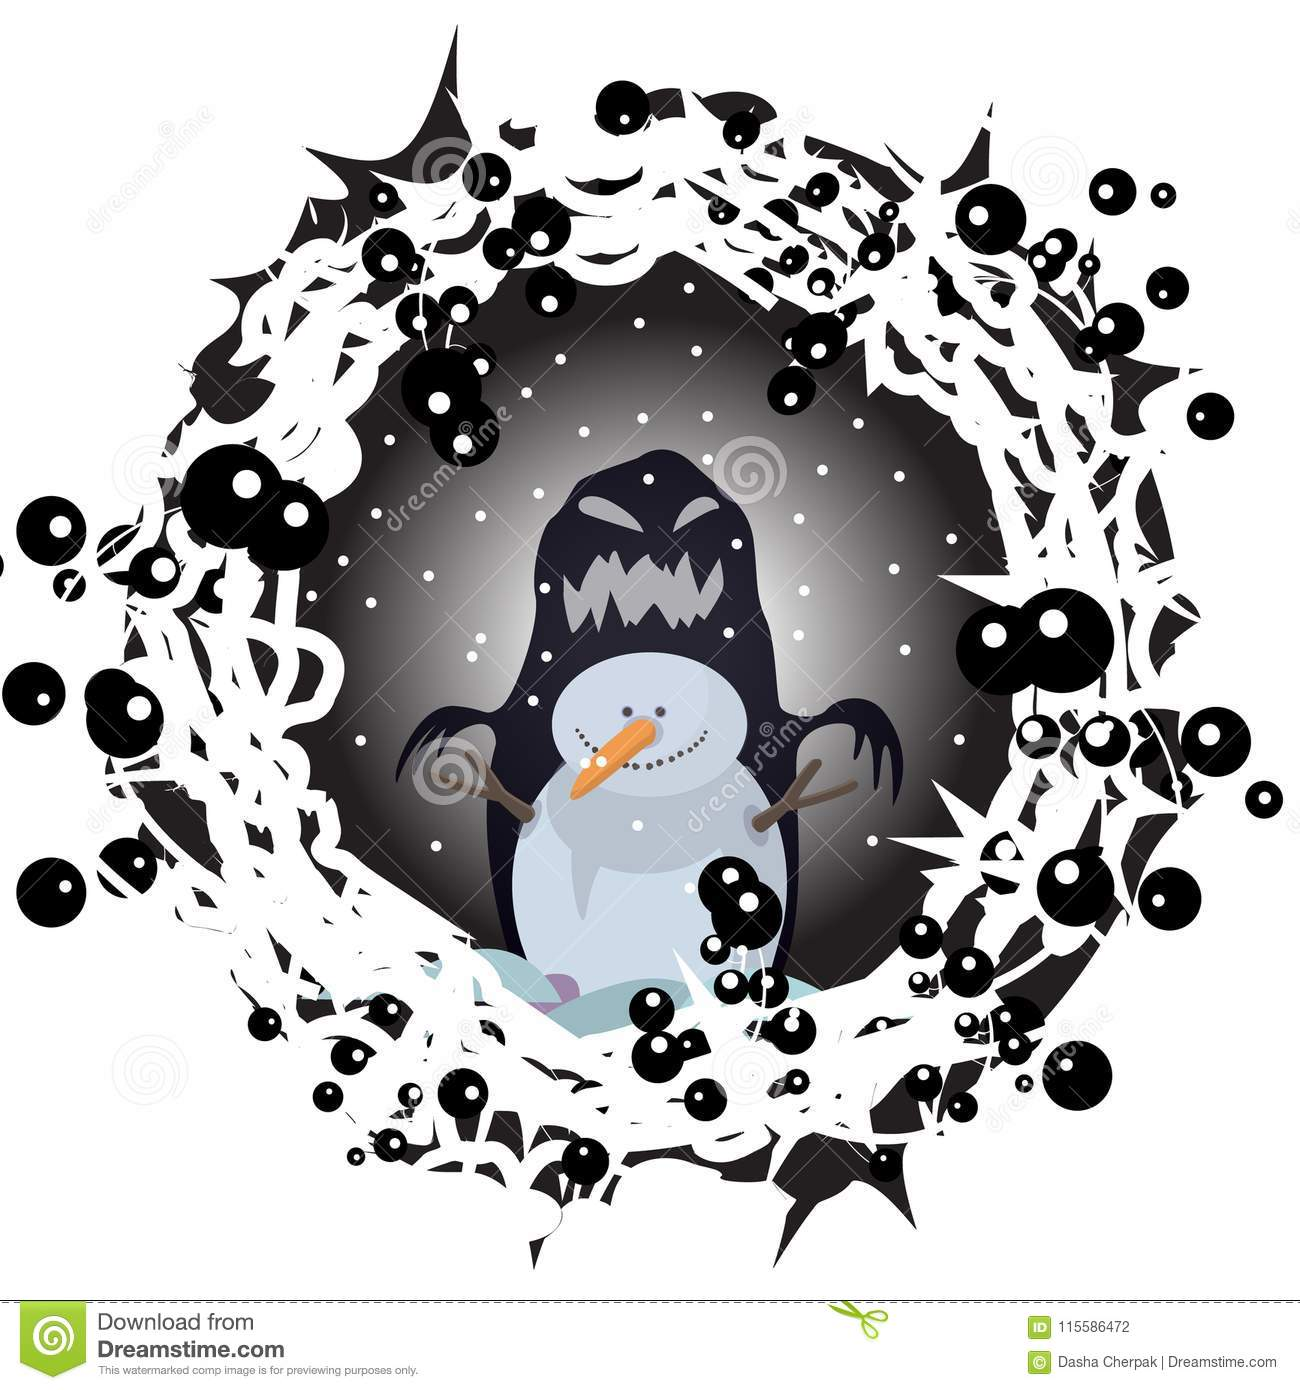 Tattoos Snowman Night Winter Halloween Character Cartoon Animation Print Nature Drawings For Children Vector Illustration Drawing Dreamstimecom Snowman Night Winter Halloween Character Cartoon Animation Print